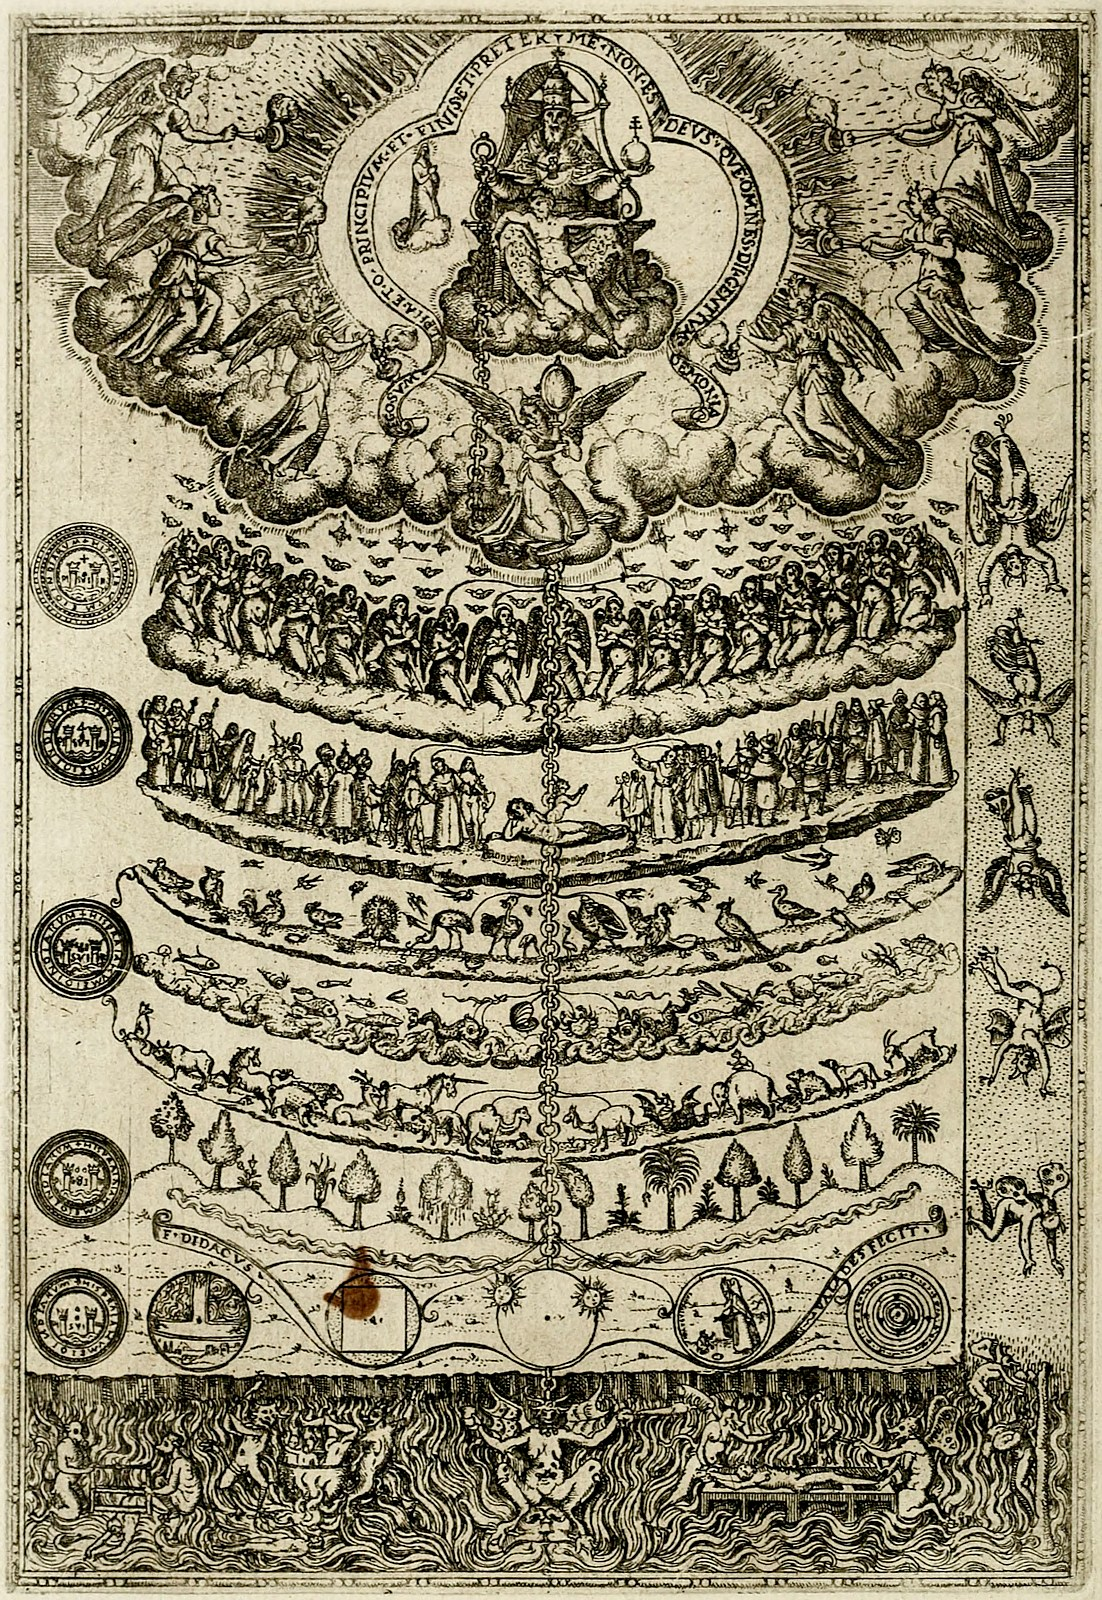 "The Great Chain of Being, as illustrated by Didacus Valades, <i>Rhetorica Christiana</i> (1579) (source: <a href=""http://www.jasonbengtson.com/earlymodern/index.html#"">Early Modern Word and Image</a>) In this scheme, minerals and other inanimate objects rank lowest in the natural order. Plants sit slightly higher due to their capacity for growth. Animals can move, sense and respond to the world around them, granting them a higher status on the Chain. Yet humans are the only natural creatures with the capacity for reason or a soul, allowing us to achieve salvation in Heaven. Angels, which lack material bodies and so cannot commit physical sins, stand above humans. God, the creator of the universe, presides at the top of the Chain outside of time and space."